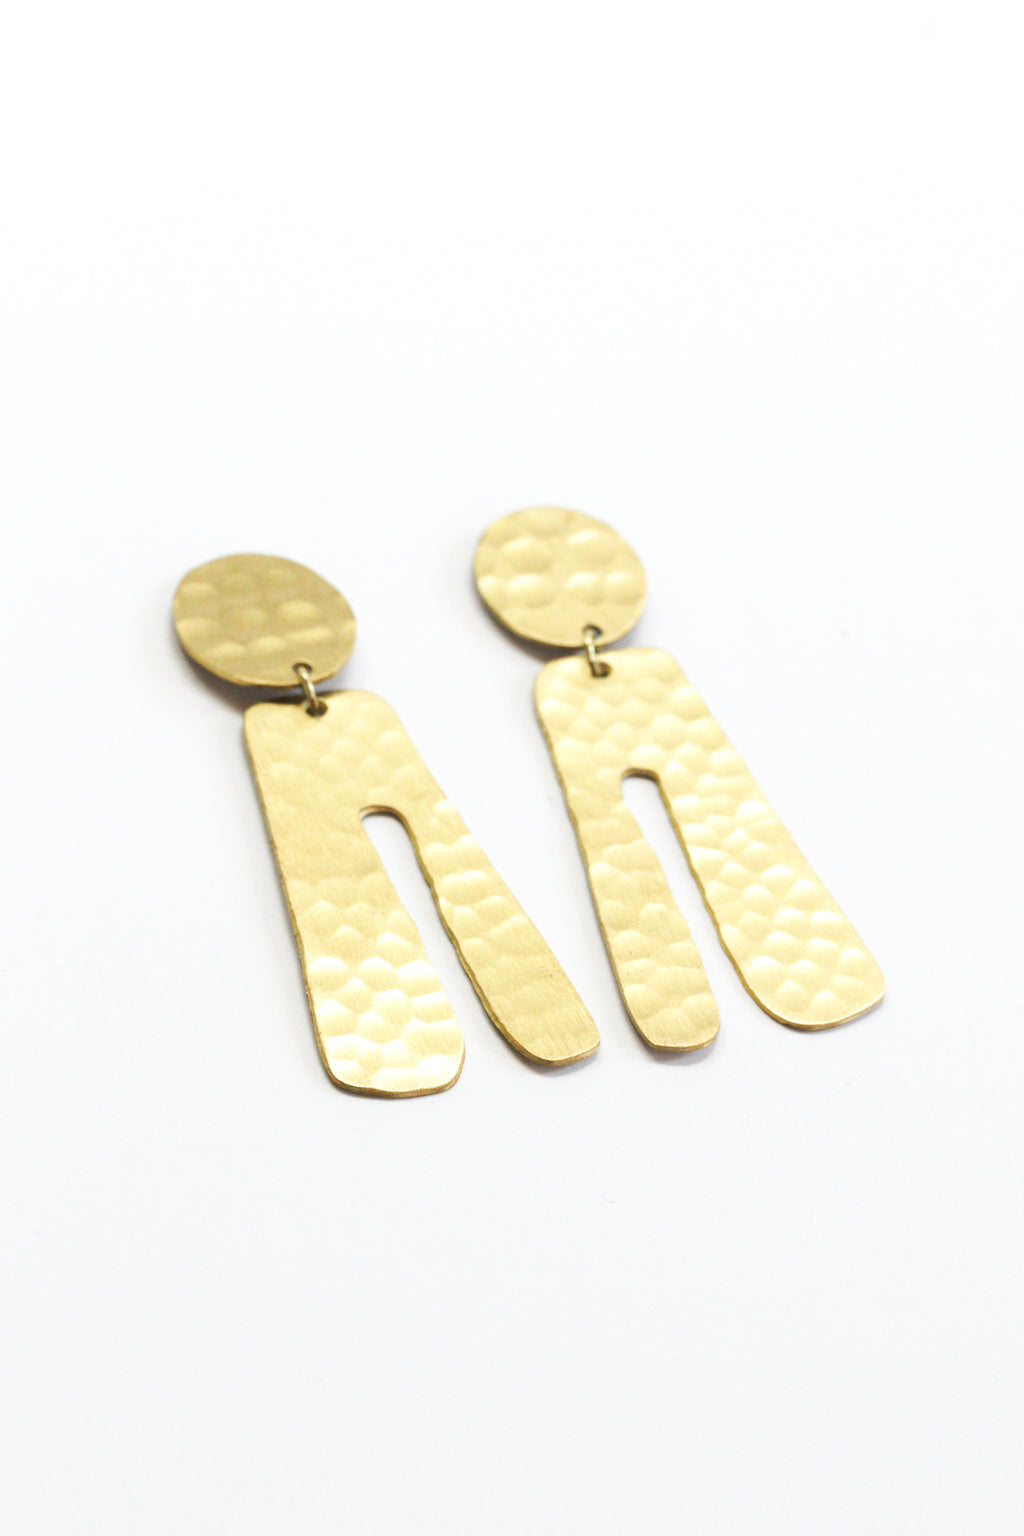 Hammered Parabola Earrings - Gold